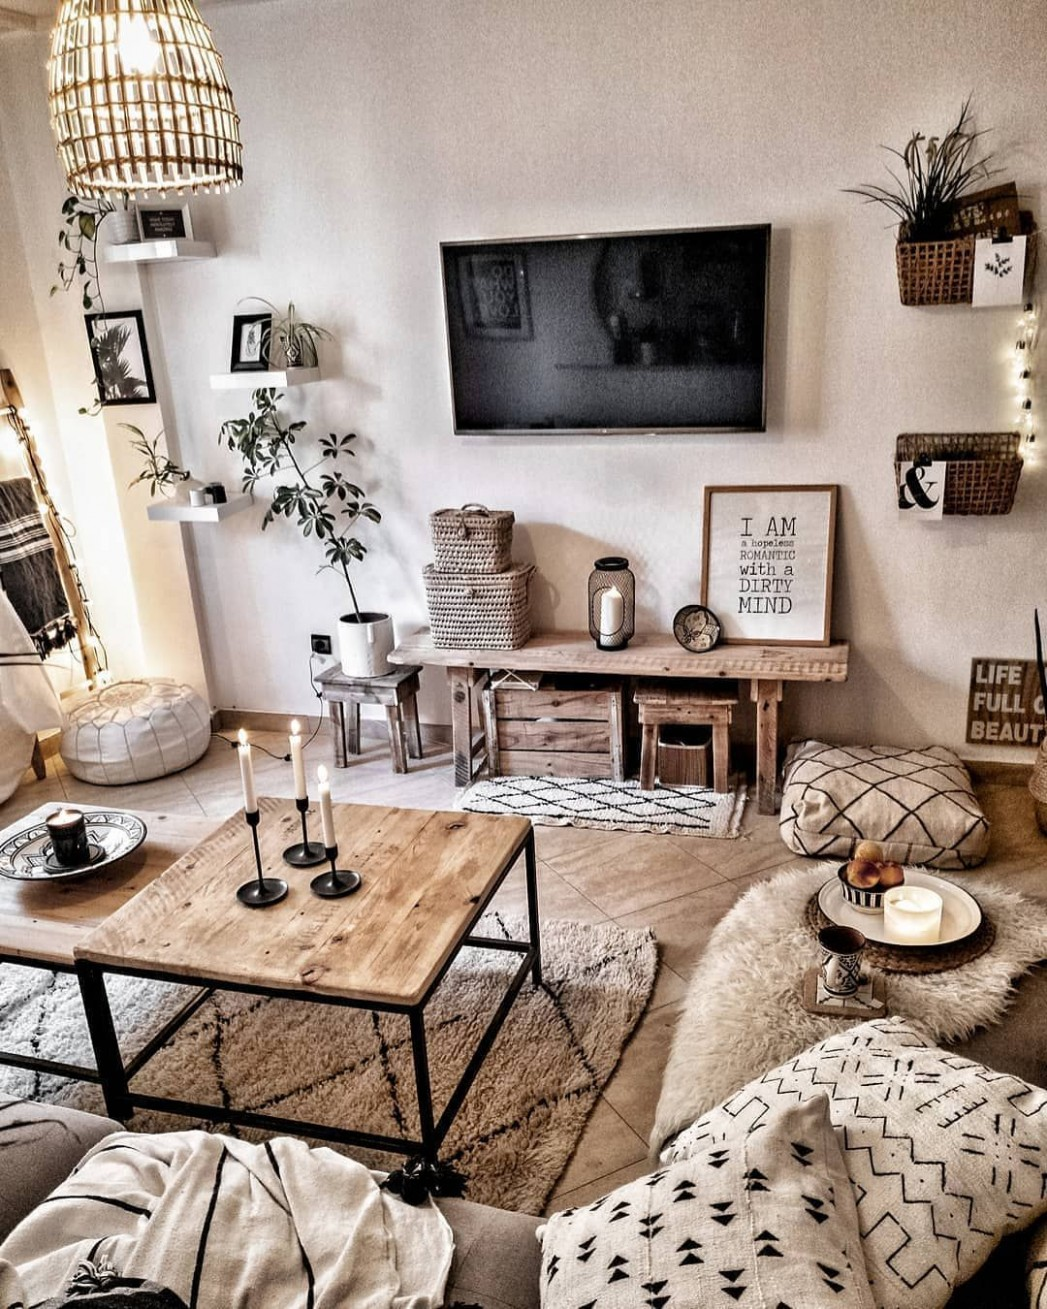 """cozi homes on Instagram: """"We LOVE this boho feel ❤ What do you  - Rustic Apartment Decor Ideas"""